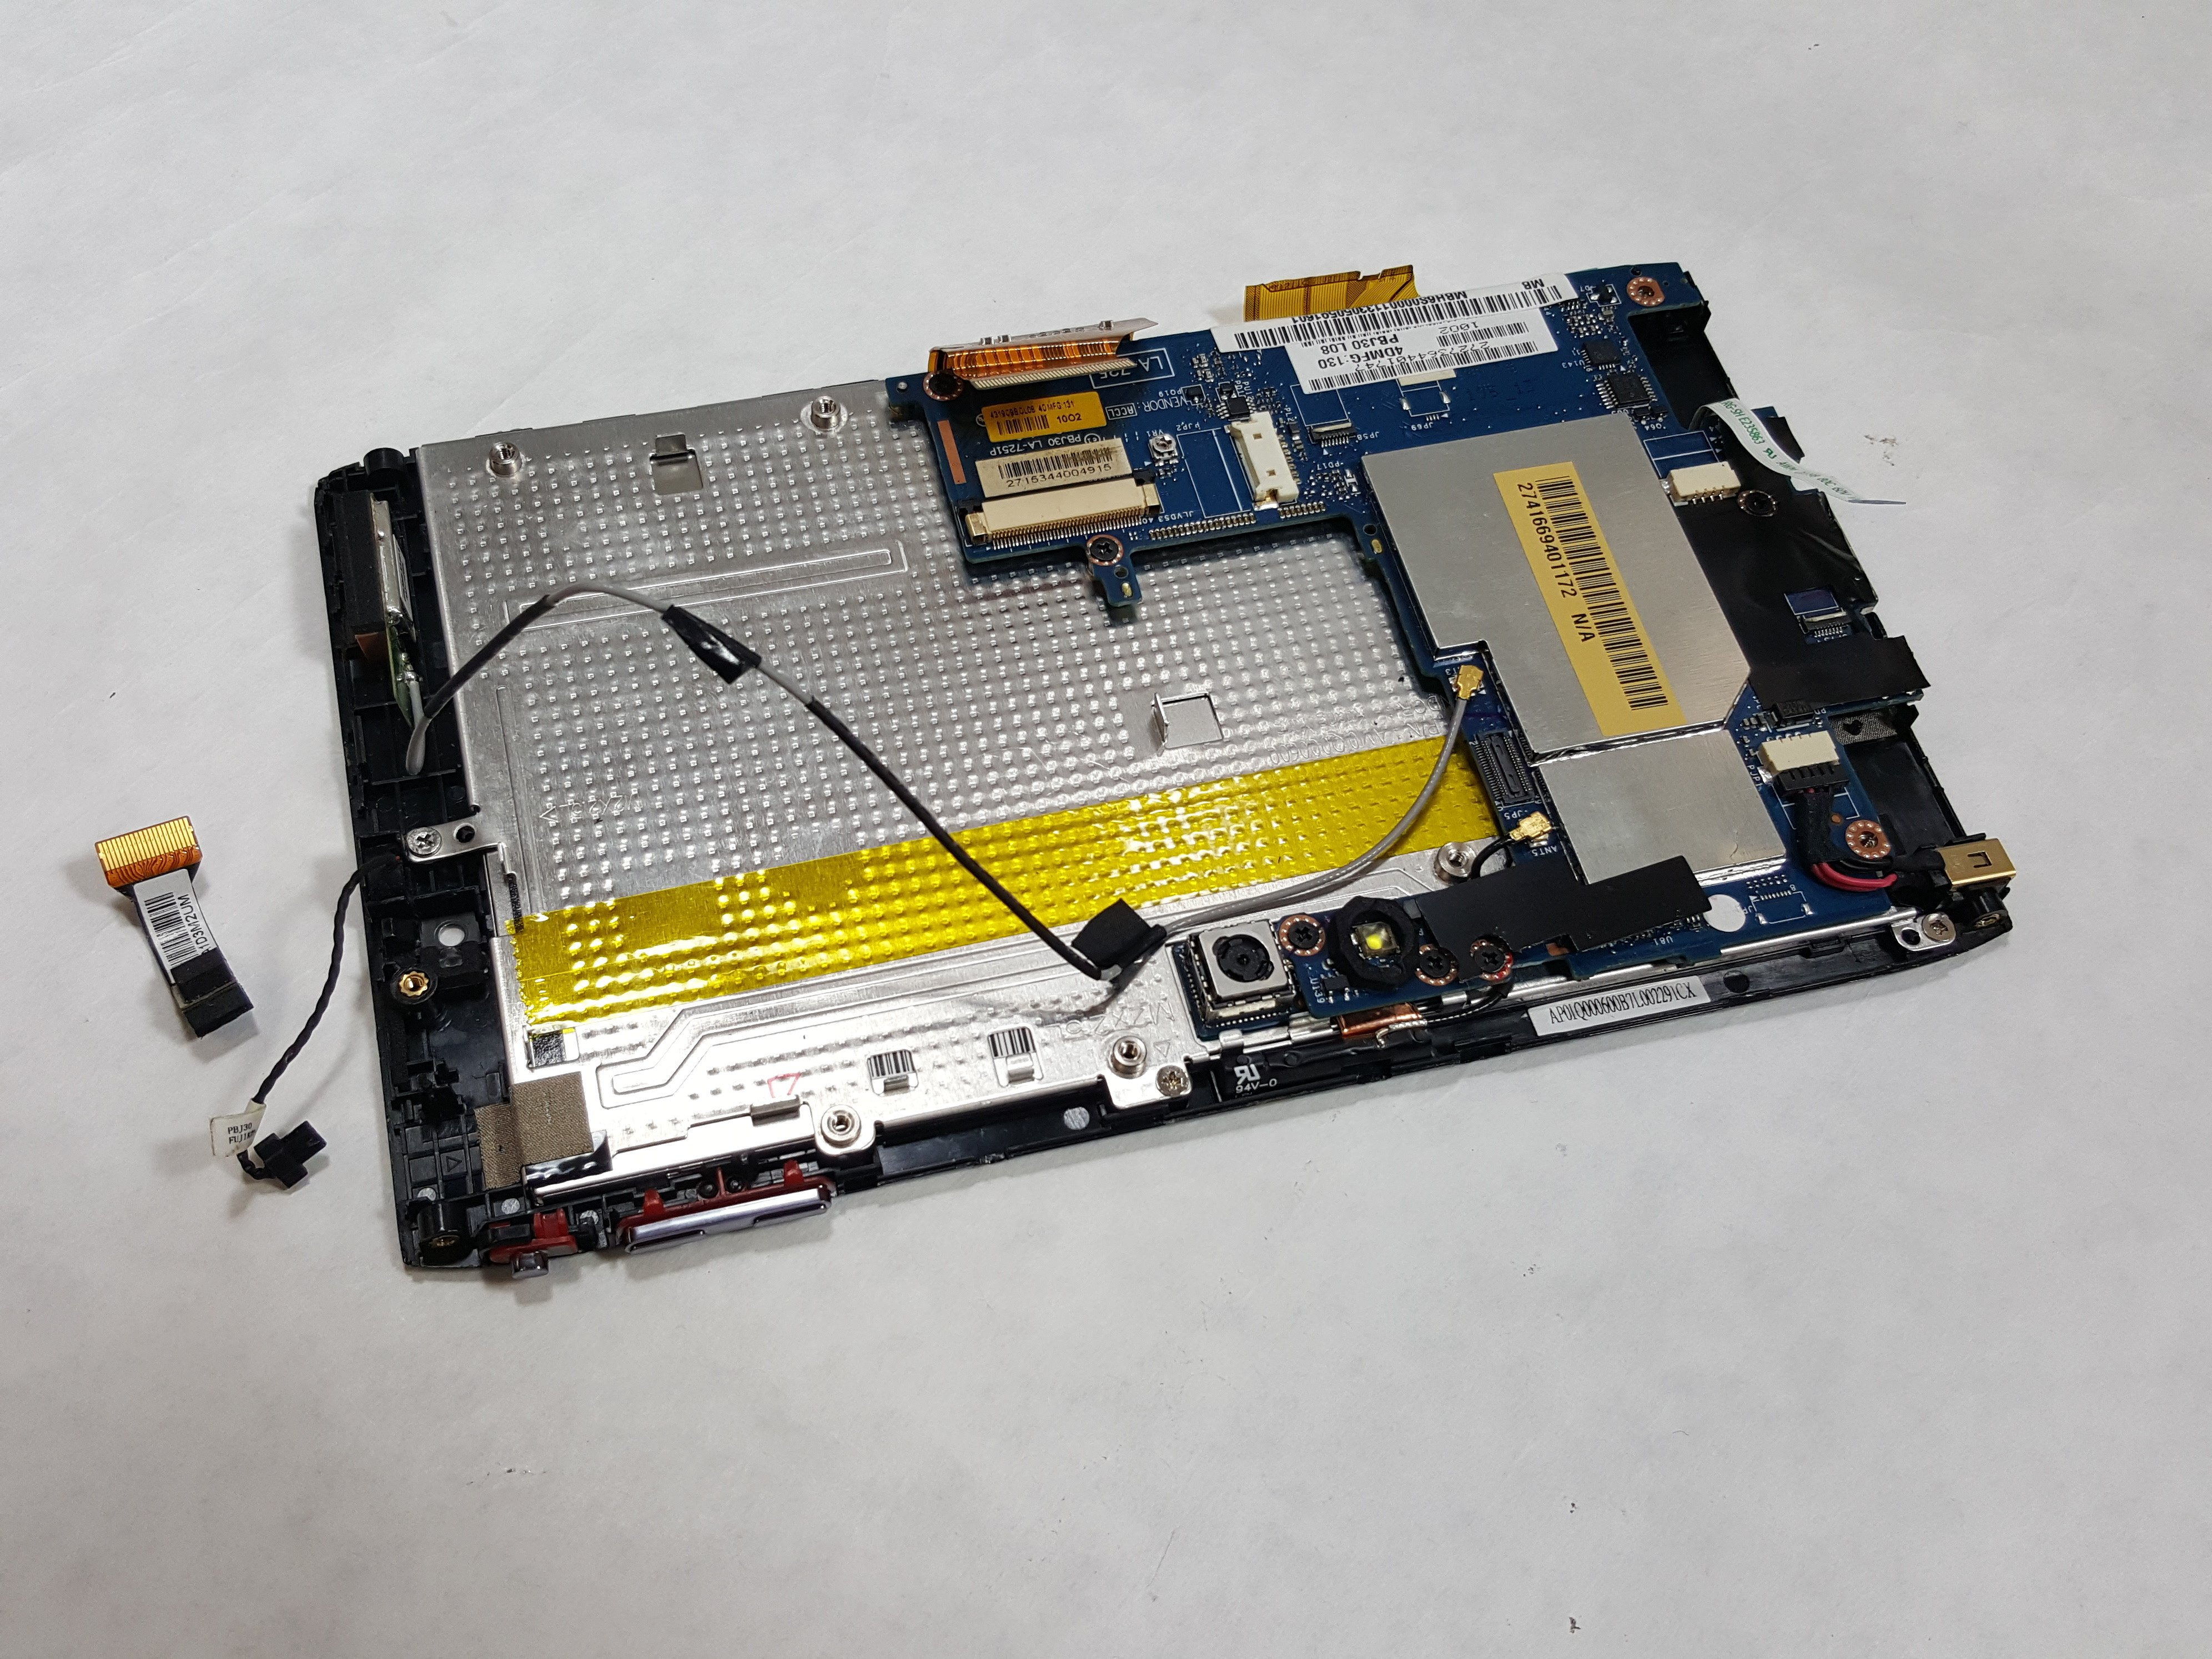 Acer Iconia A100 Light Sensor Replacement